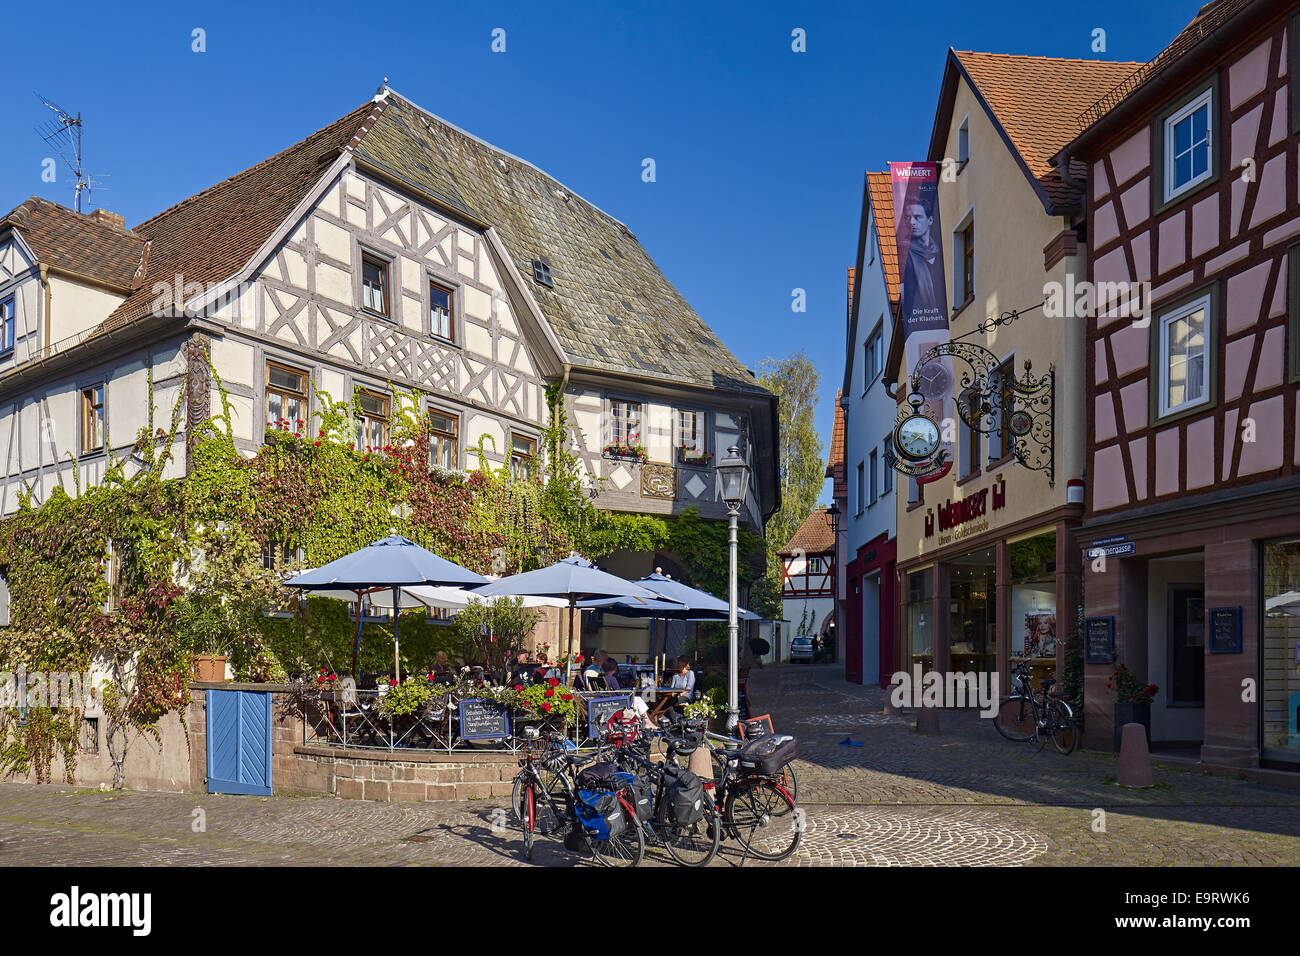 Gasthof krone in lohr am main germany stock photo for Heimbach lohr am main